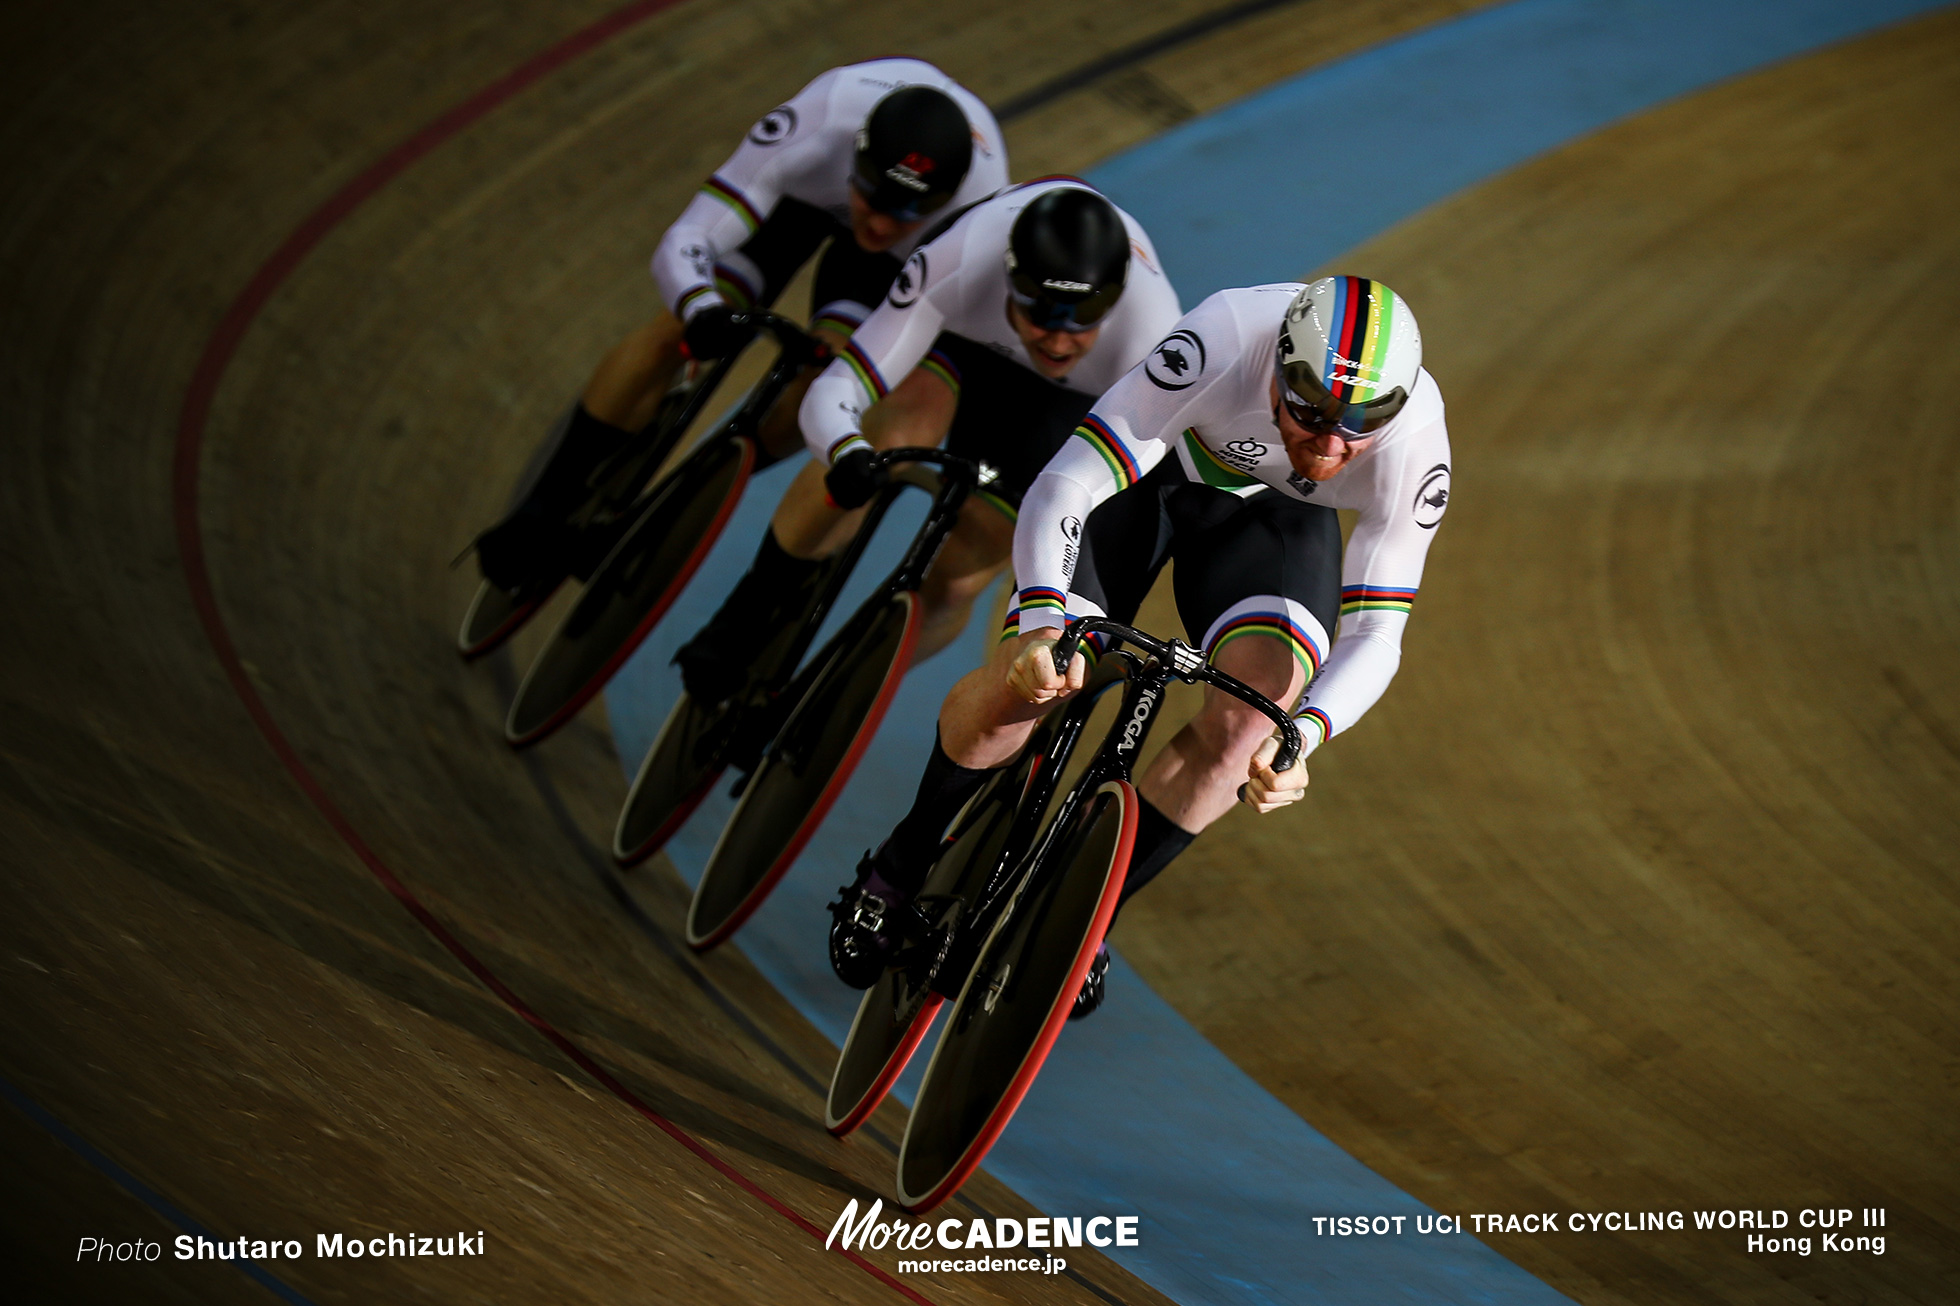 1st Round / Men's Team Sprint / TISSOT UCI TRACK CYCLING WORLD CUP III, Hong Kong